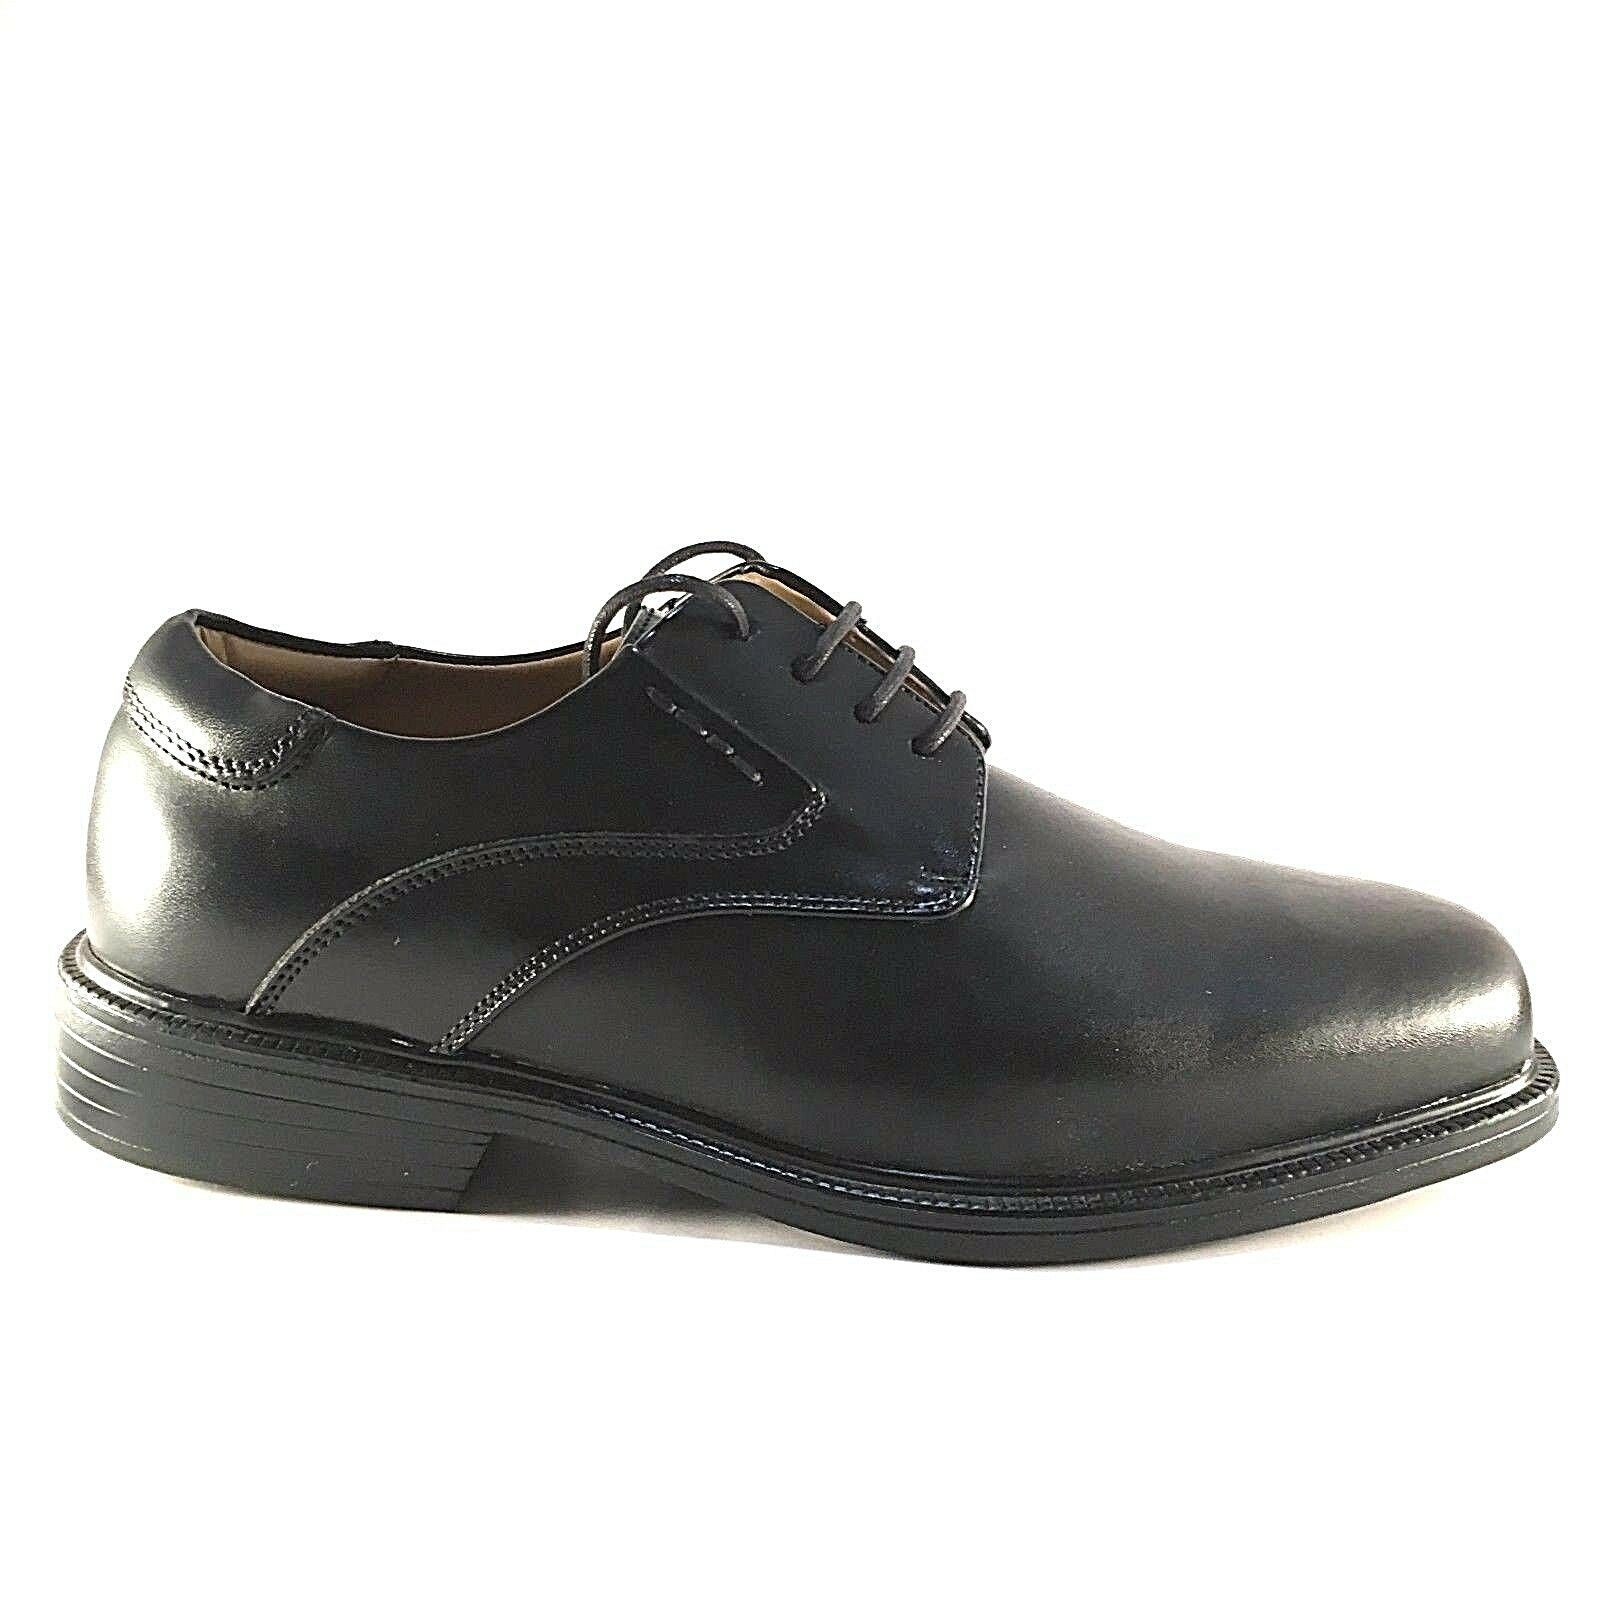 La Milano A1719 Black Leather Comfort Lace Up Extra Wide (EEE) Men's Dress Shoes 1